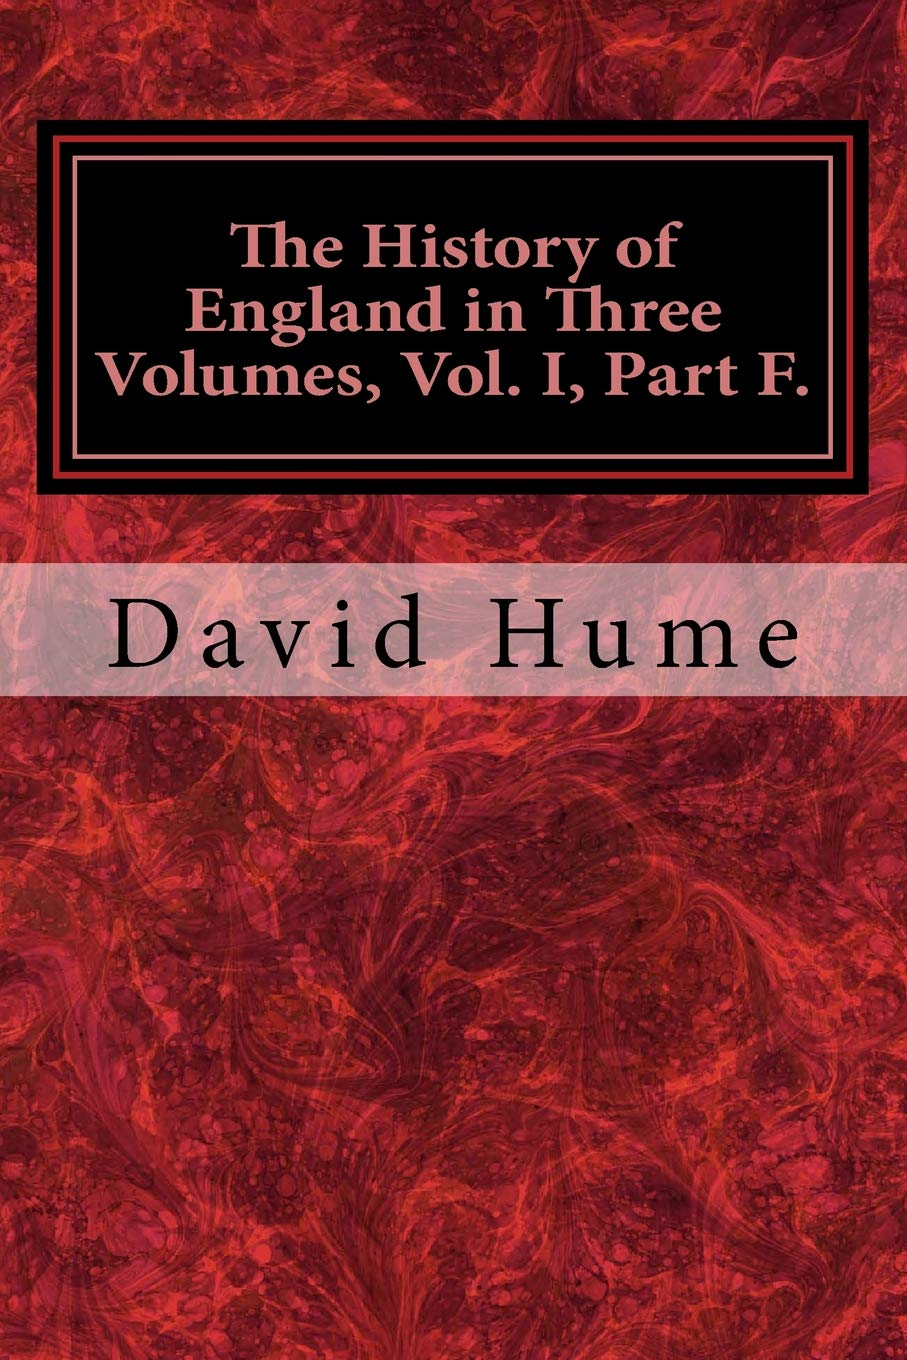 The History of England in Three Volumes, Vol. I, Part F.: From Charles II to James II (Volume 6) pdf